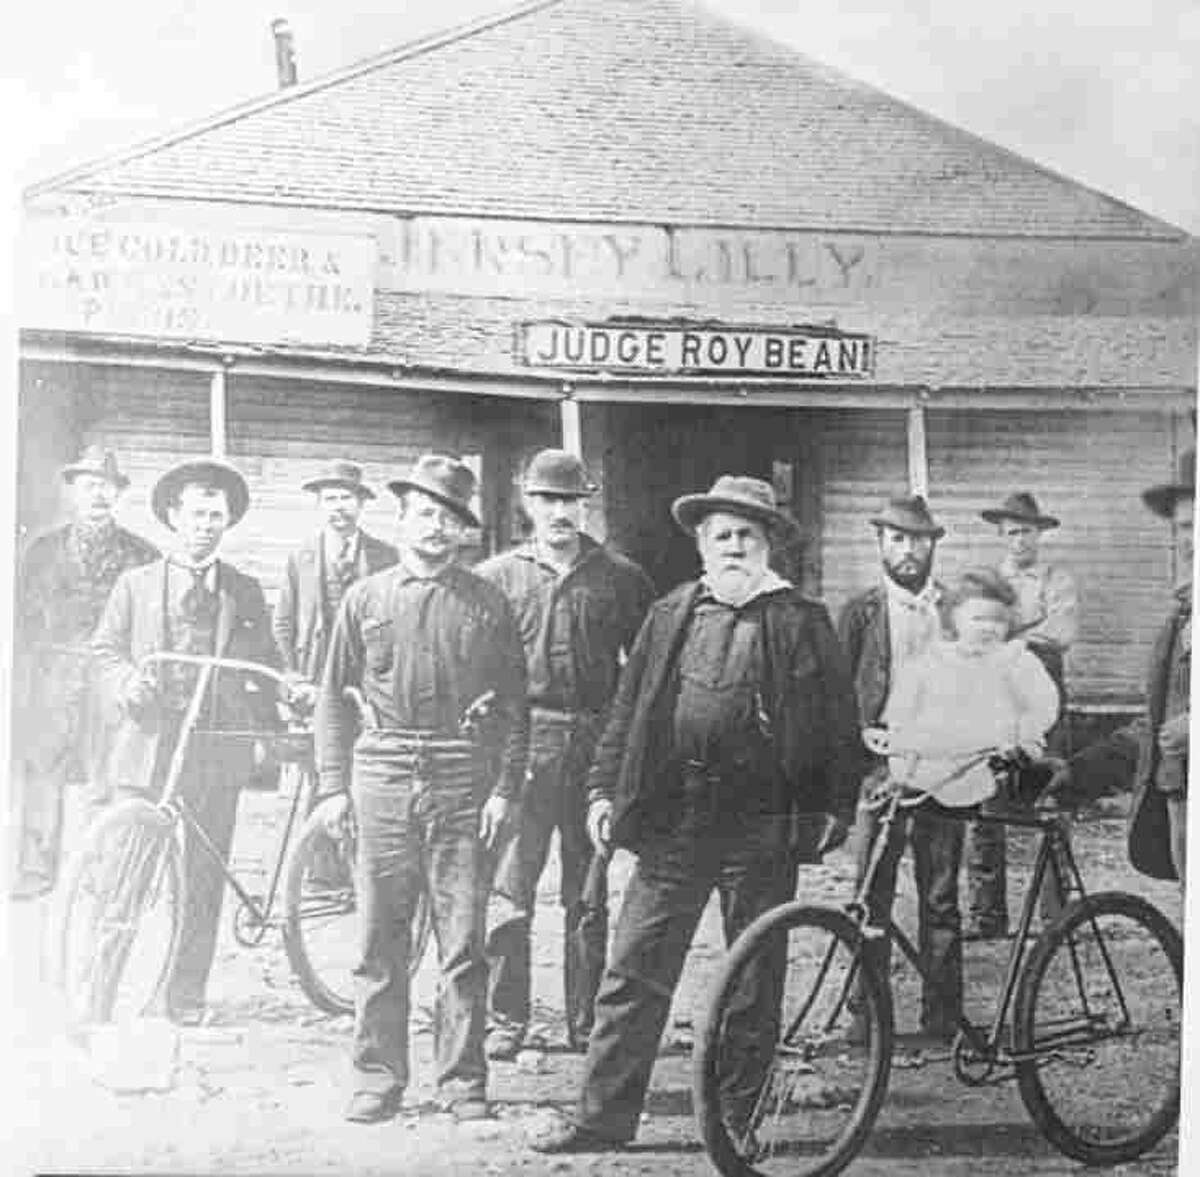 Roy Bean poses in front of his Jersey Lilly saloon in Langtry, where he ruled with an iron hand.